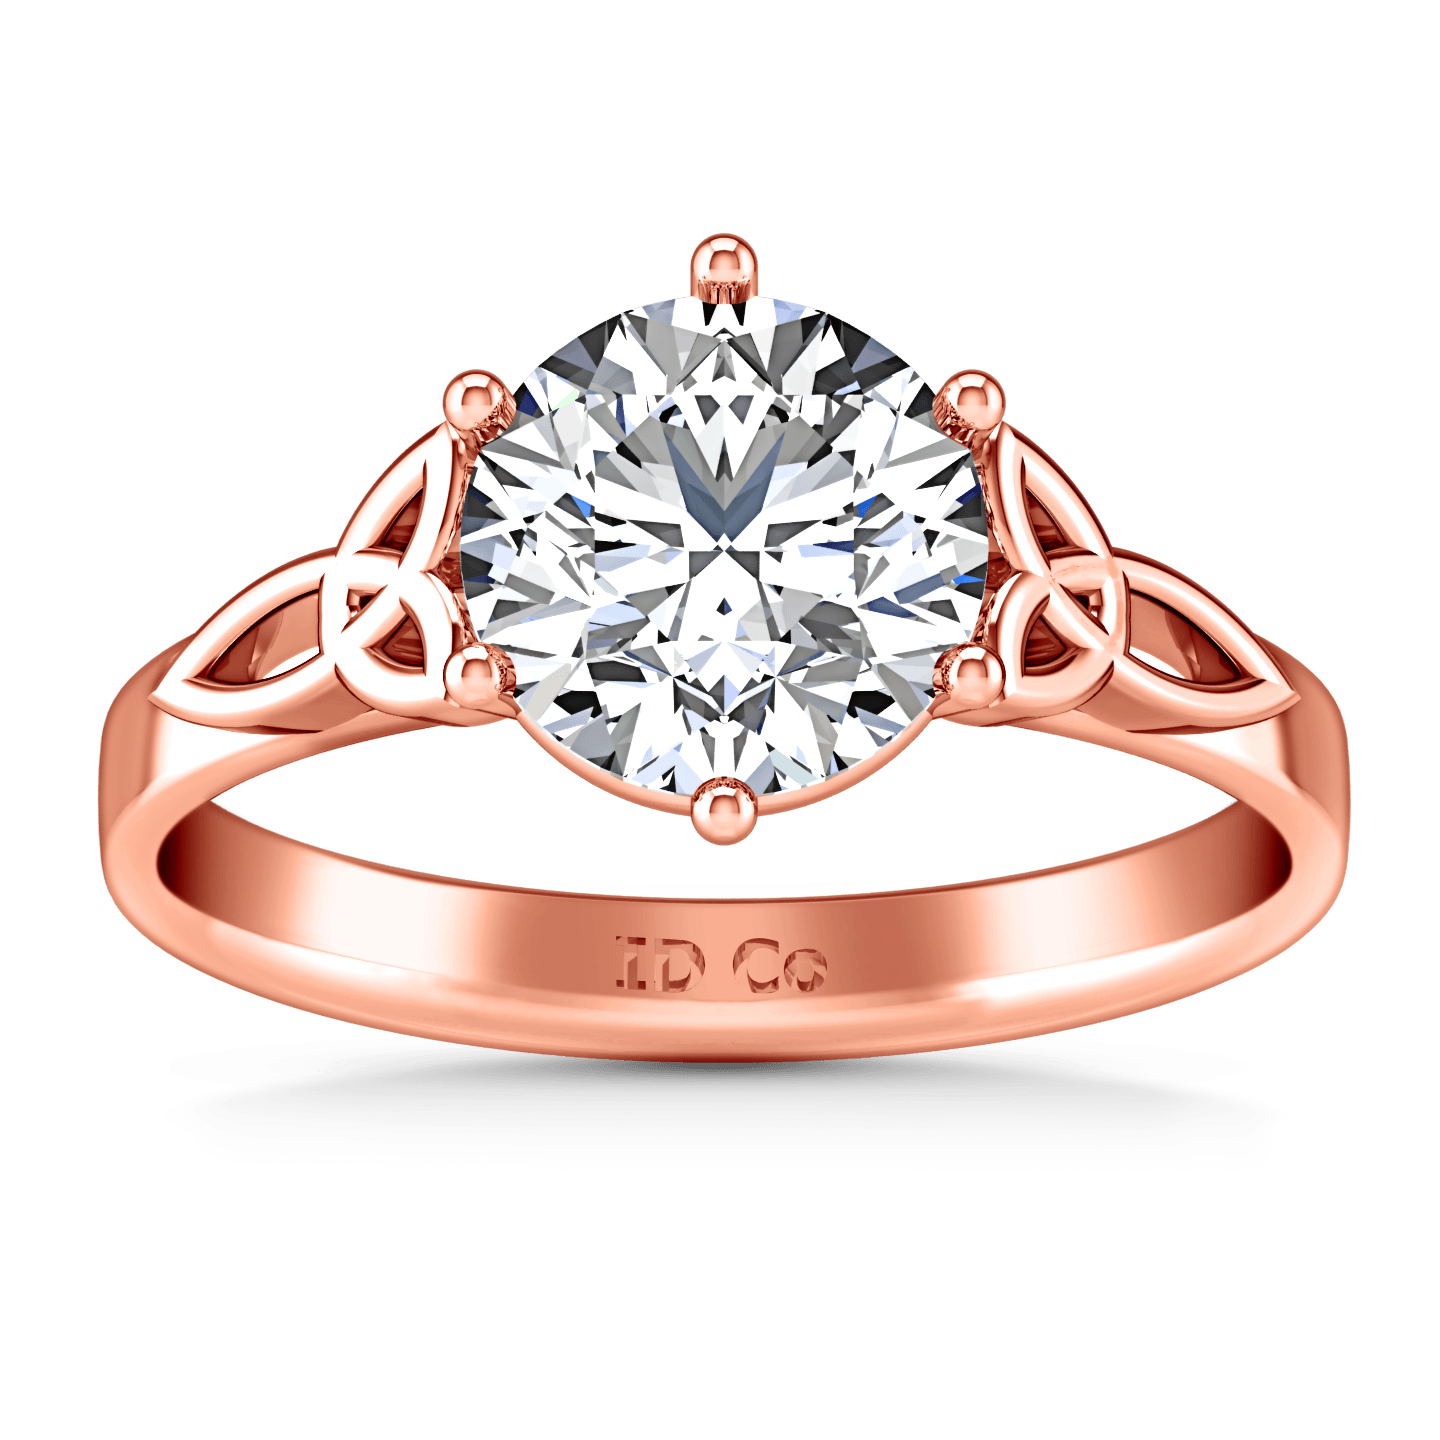 Engagement Rings Knot: Solitaire Diamond Engagement Ring Fiona Celtic Knot 14K